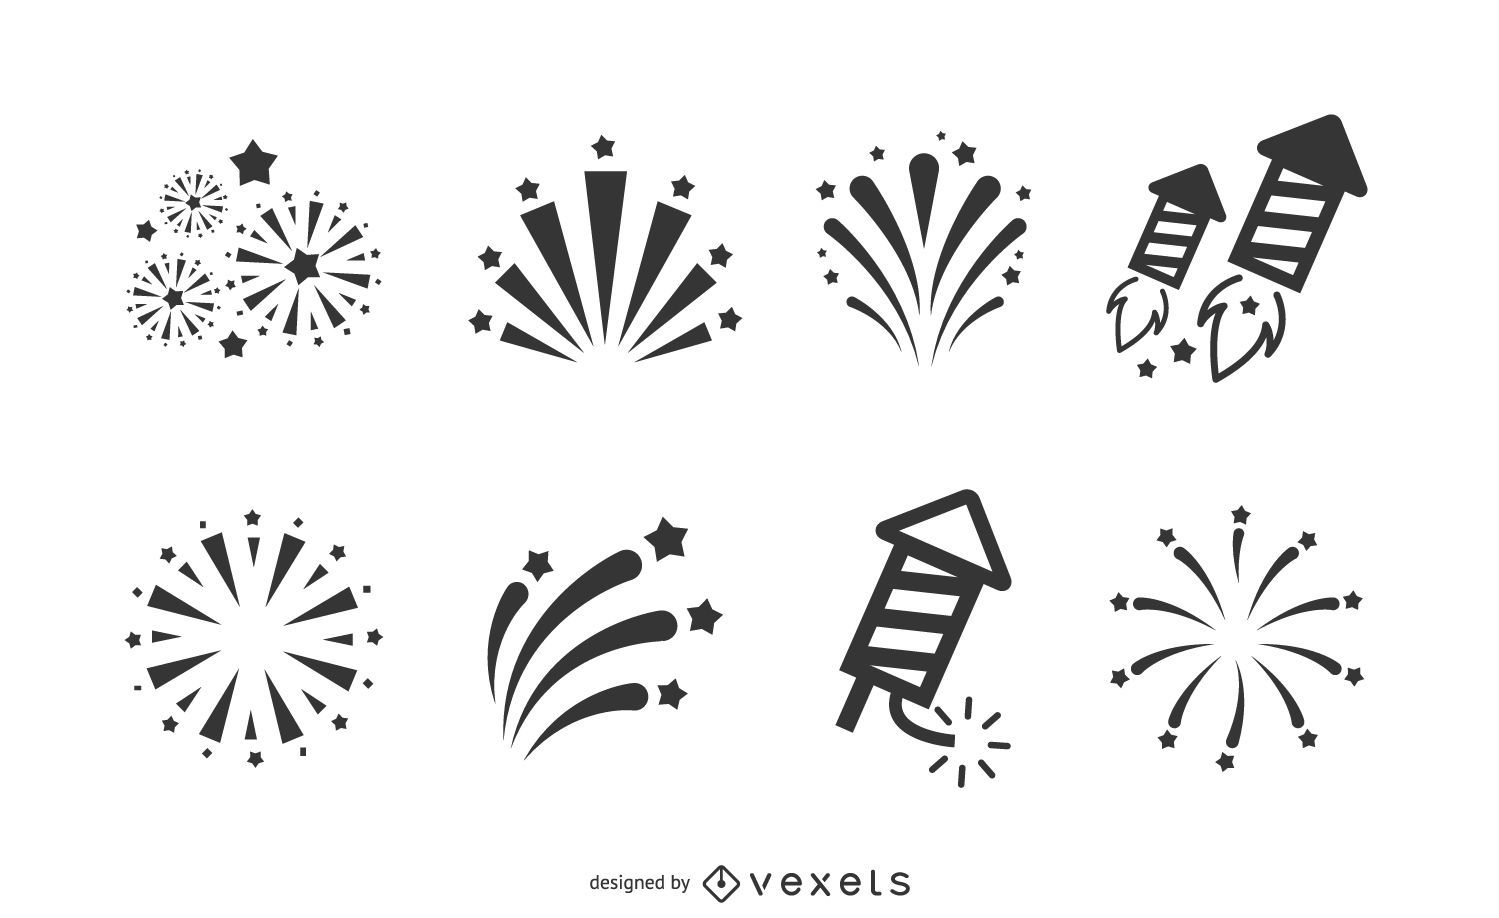 Fireworks icon collection - Vector downloadFireworks Icon